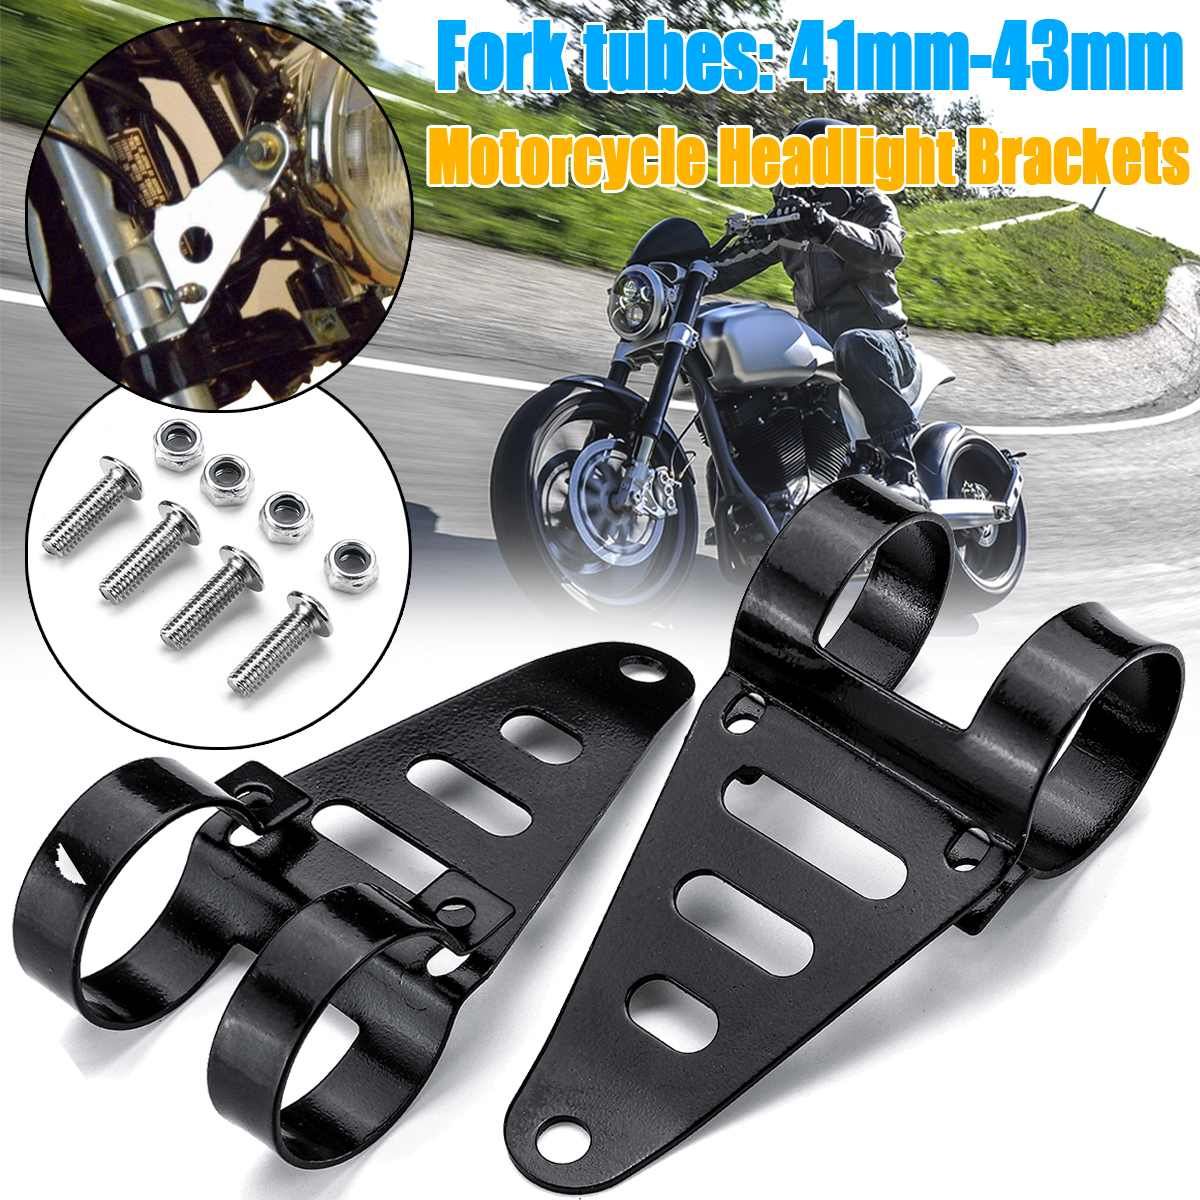 Universal Motorcycle Headlight Mount Brackets 41-43mm Fork Tube Mount Clamp Bracket Holder Adjustable Easy To Install